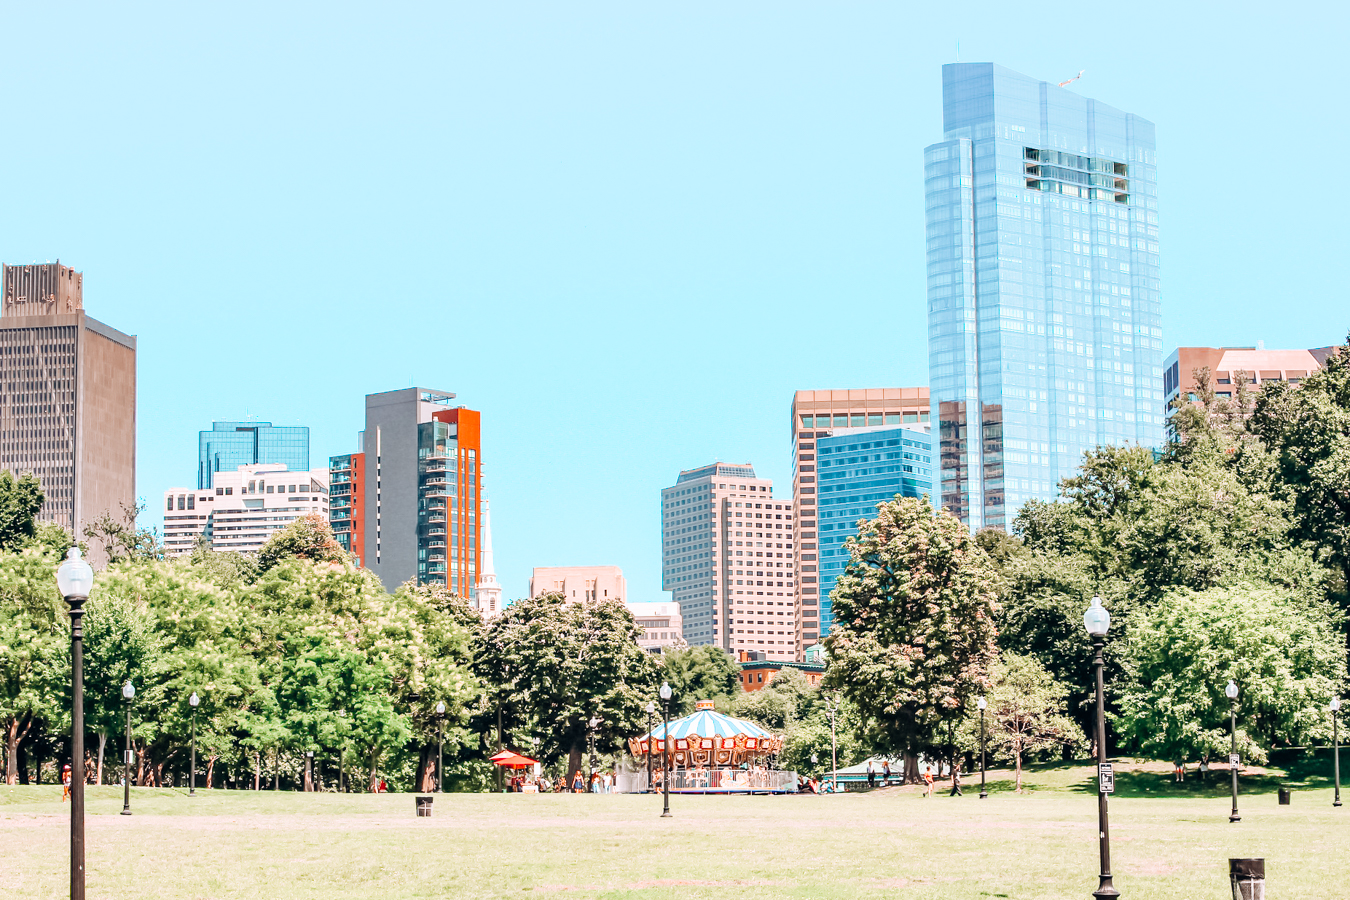 Grass, trees, and buildings in Boston